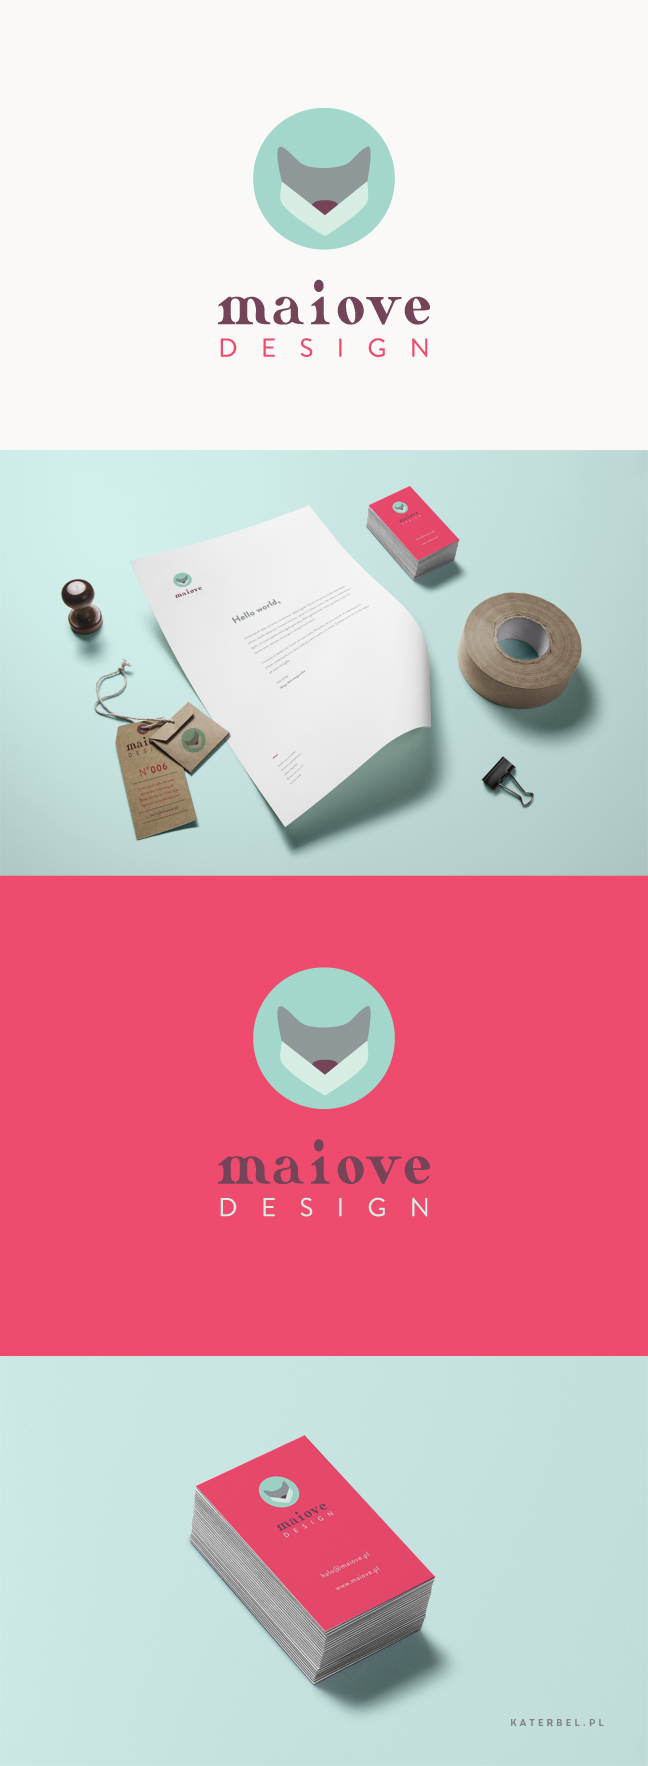 maiove_by_katerbel.pl